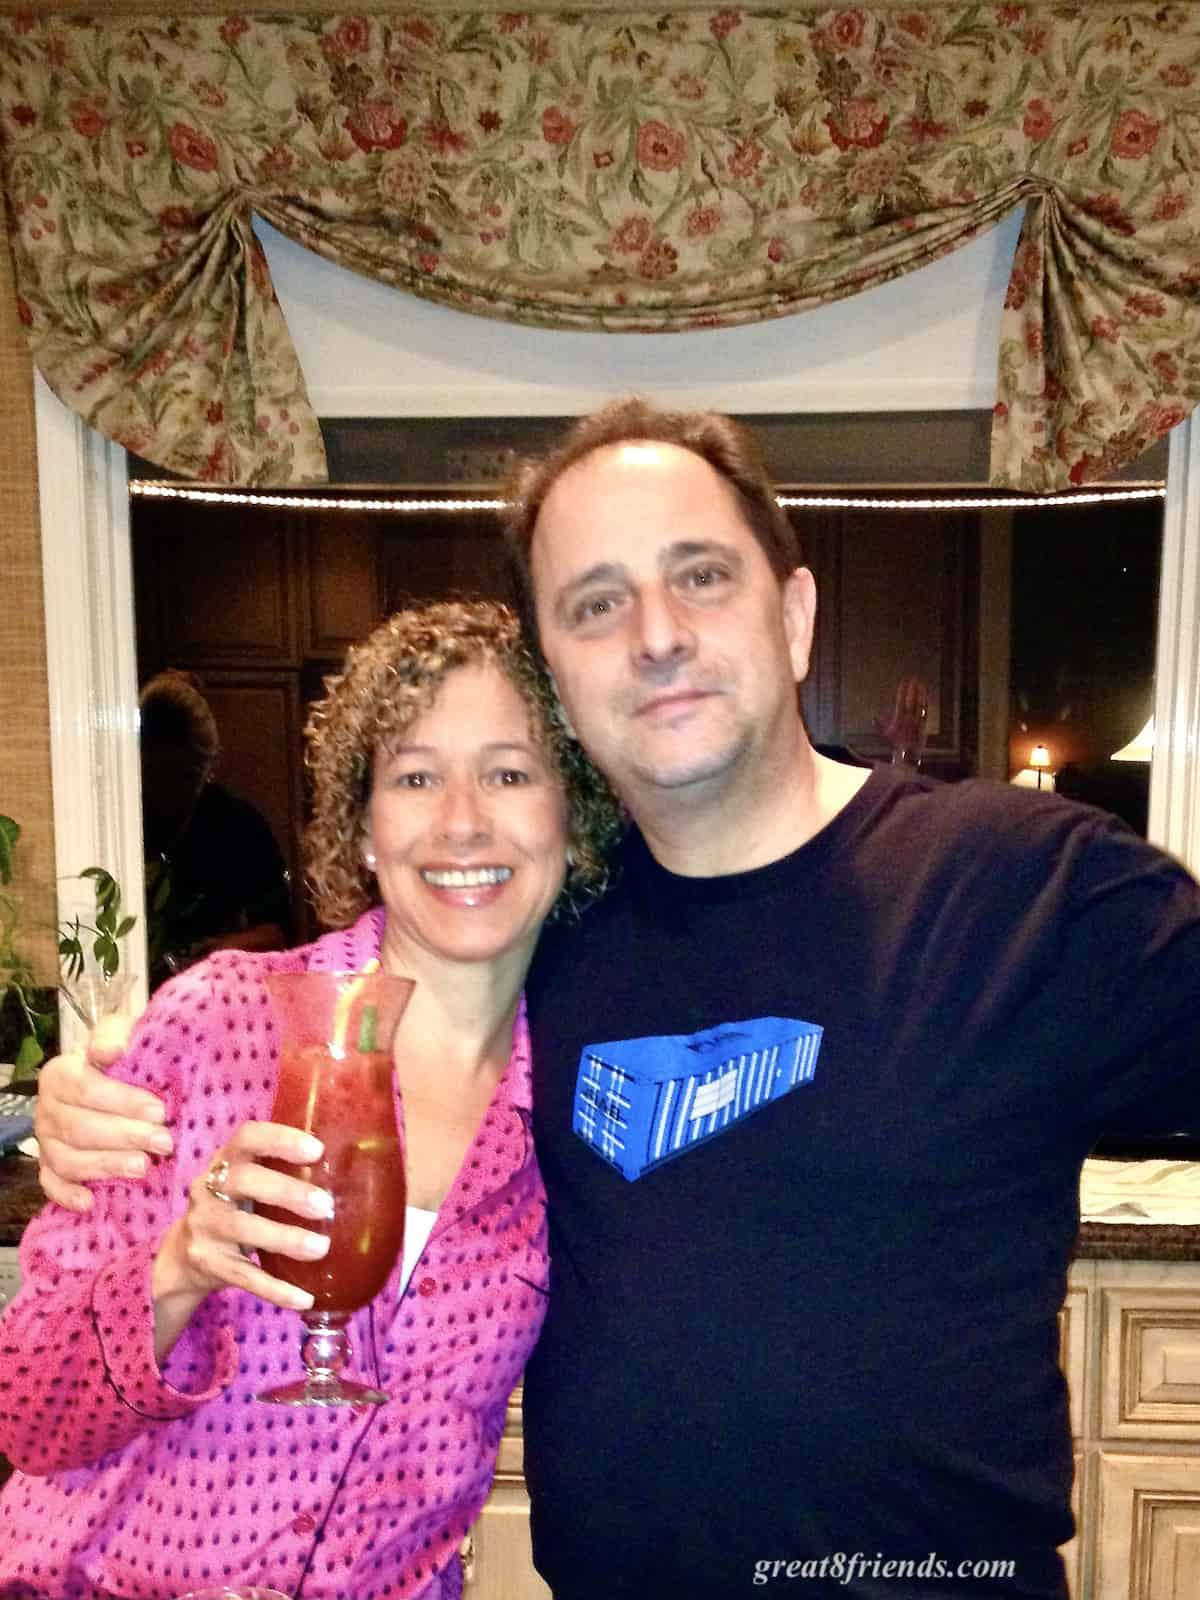 A man and woman posing for the camera and the woman has a tall glass with a Bloody Mary in it.